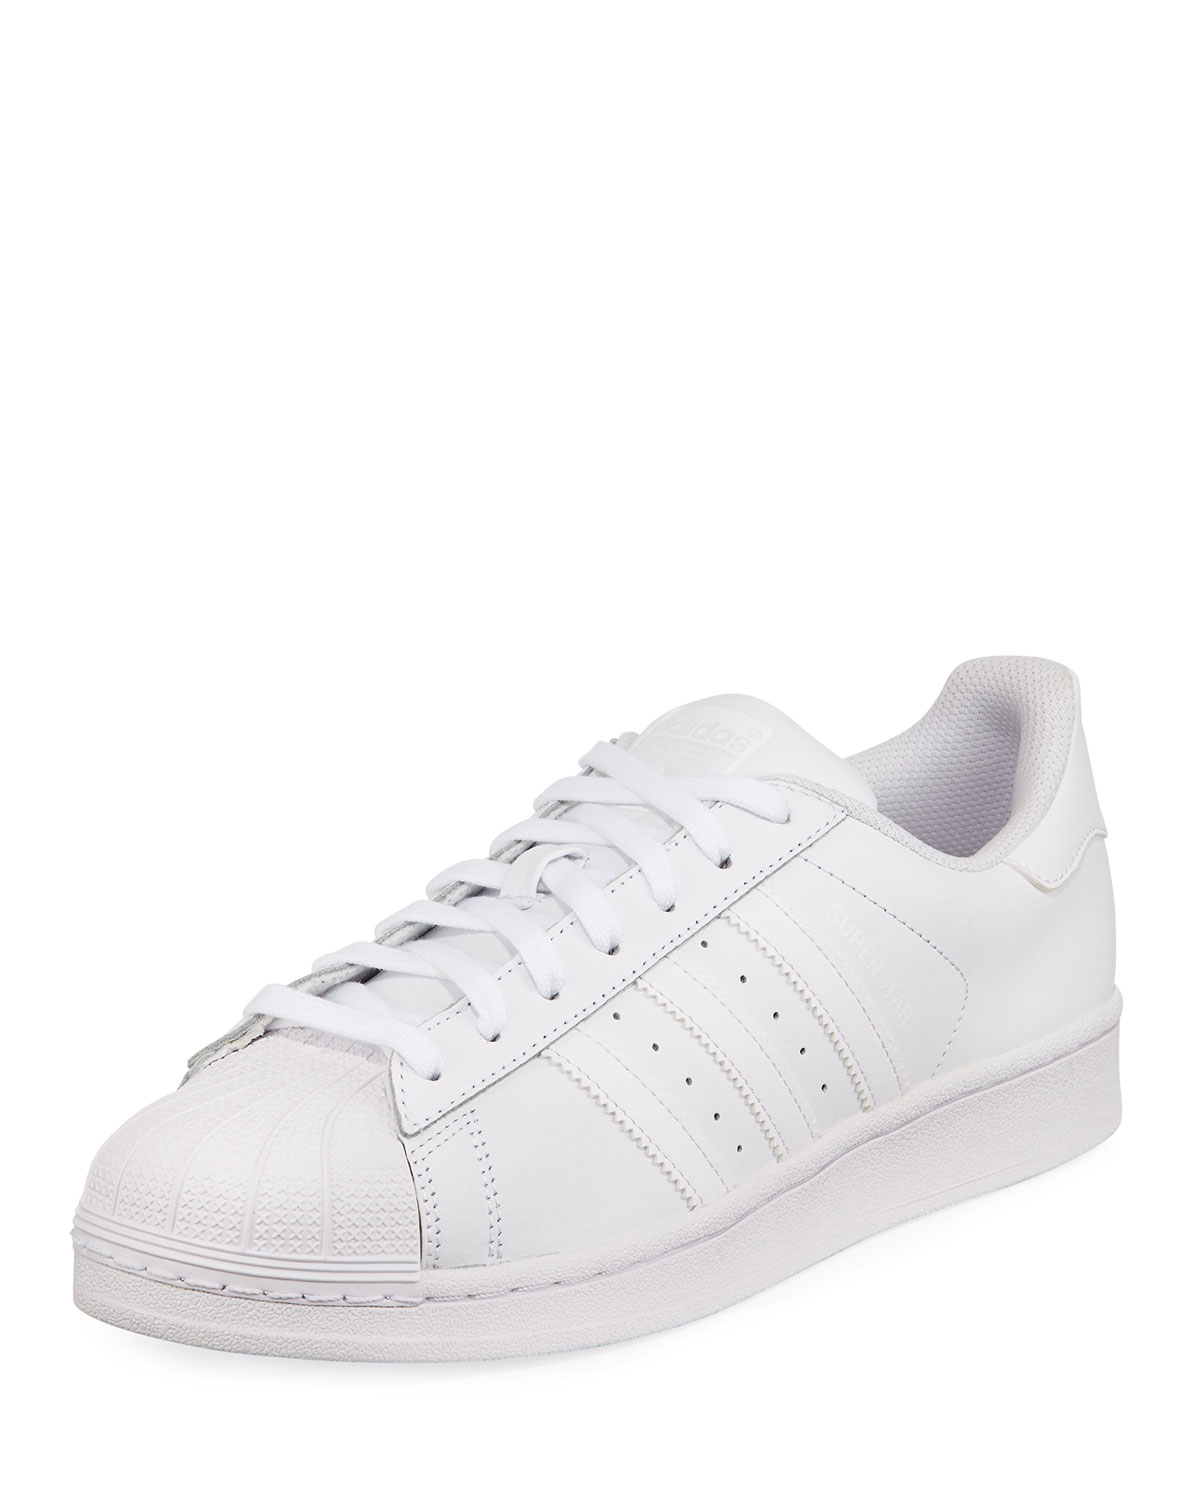 premium selection b8a69 53426 Adidas Men s Superstar Foundation Leather Sneakers, ...